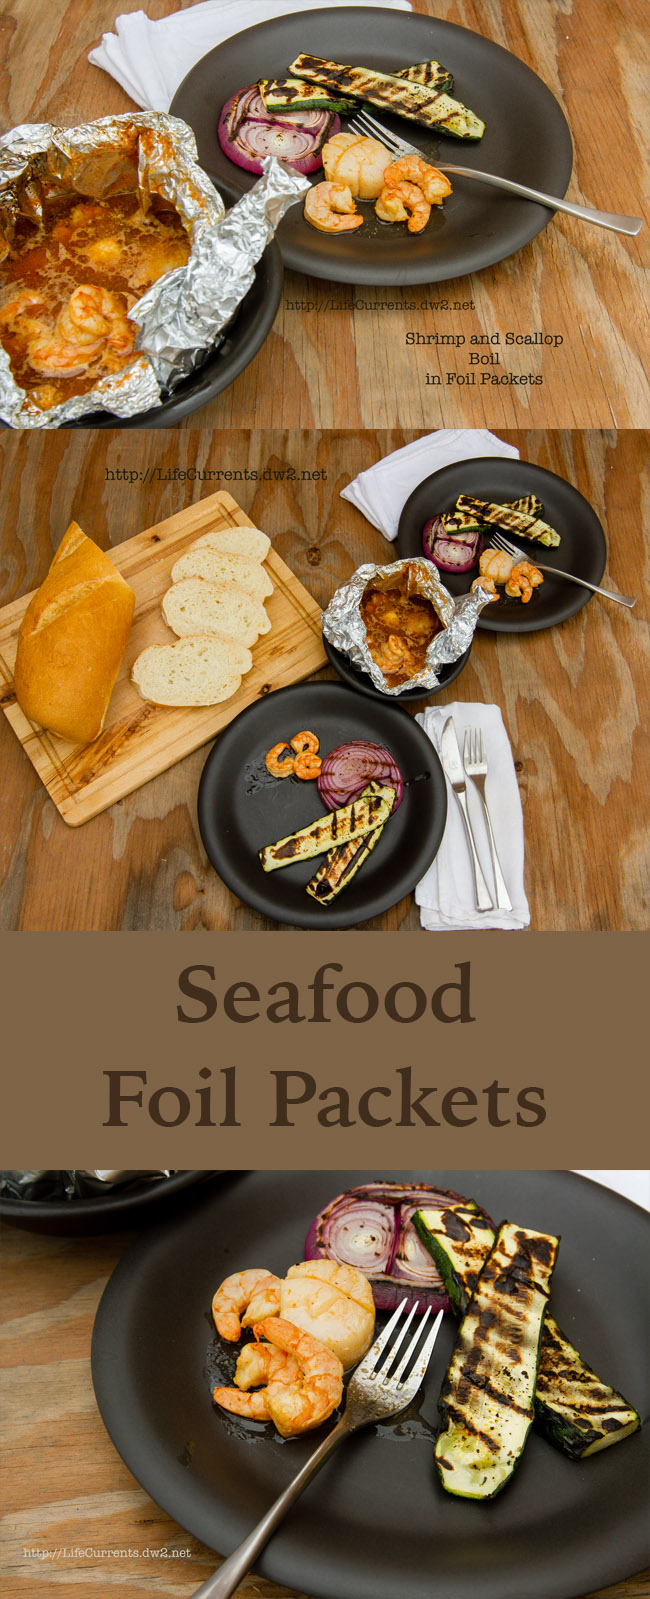 Shrimp and Scallop Boil in Foil Packets ready for camping, grilling, outdoor cooking. Long pin for pinterest